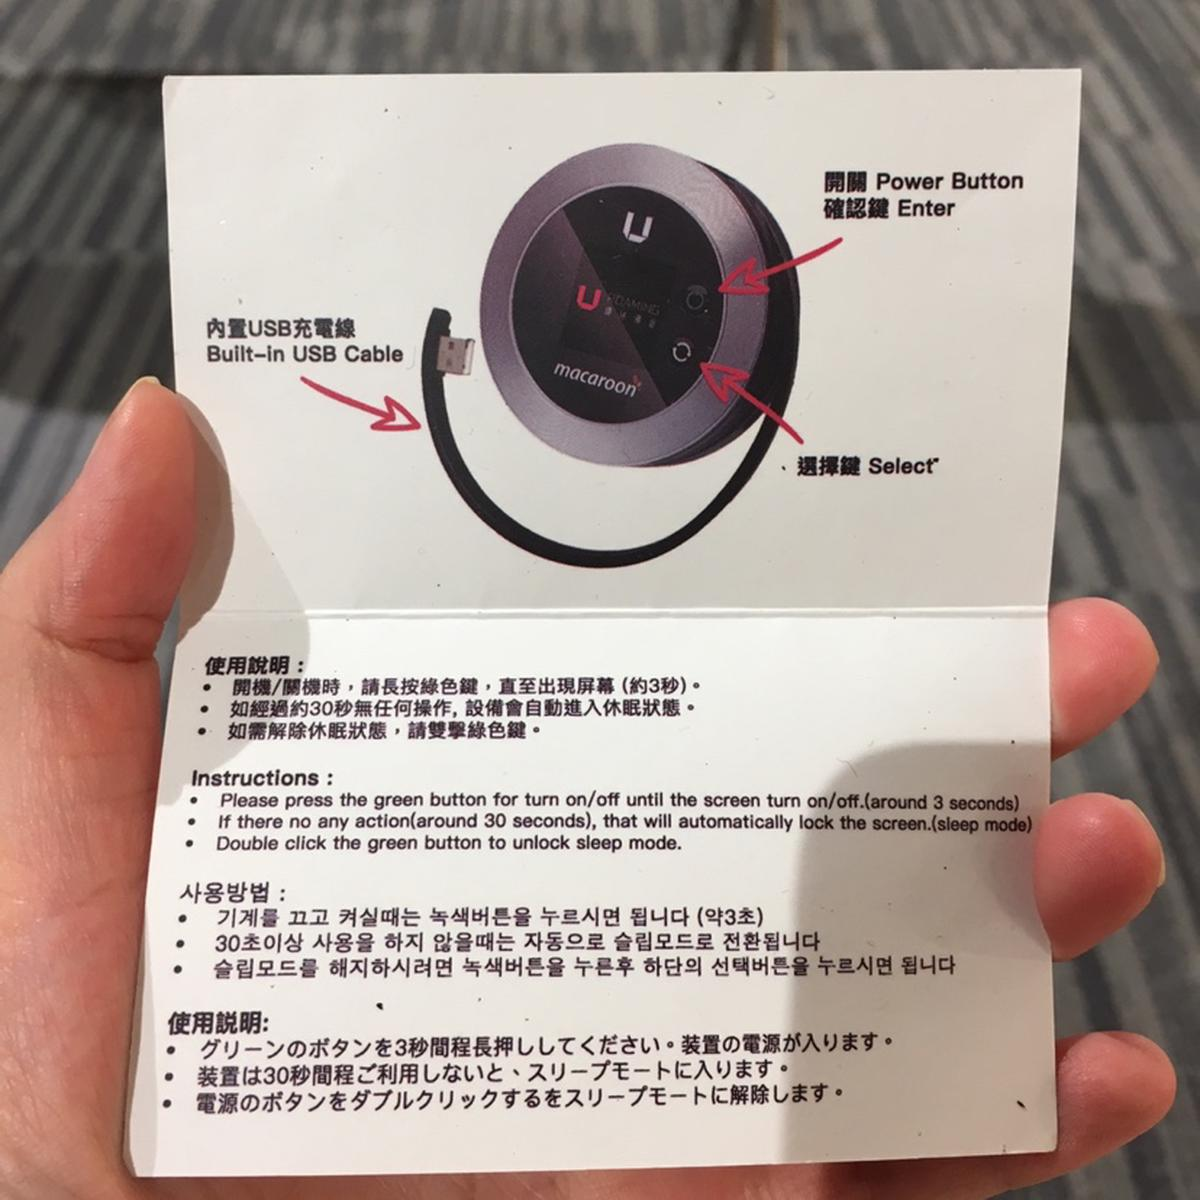 4G WiFi Device (Hong Kong Pick Up) for Japan - Klook